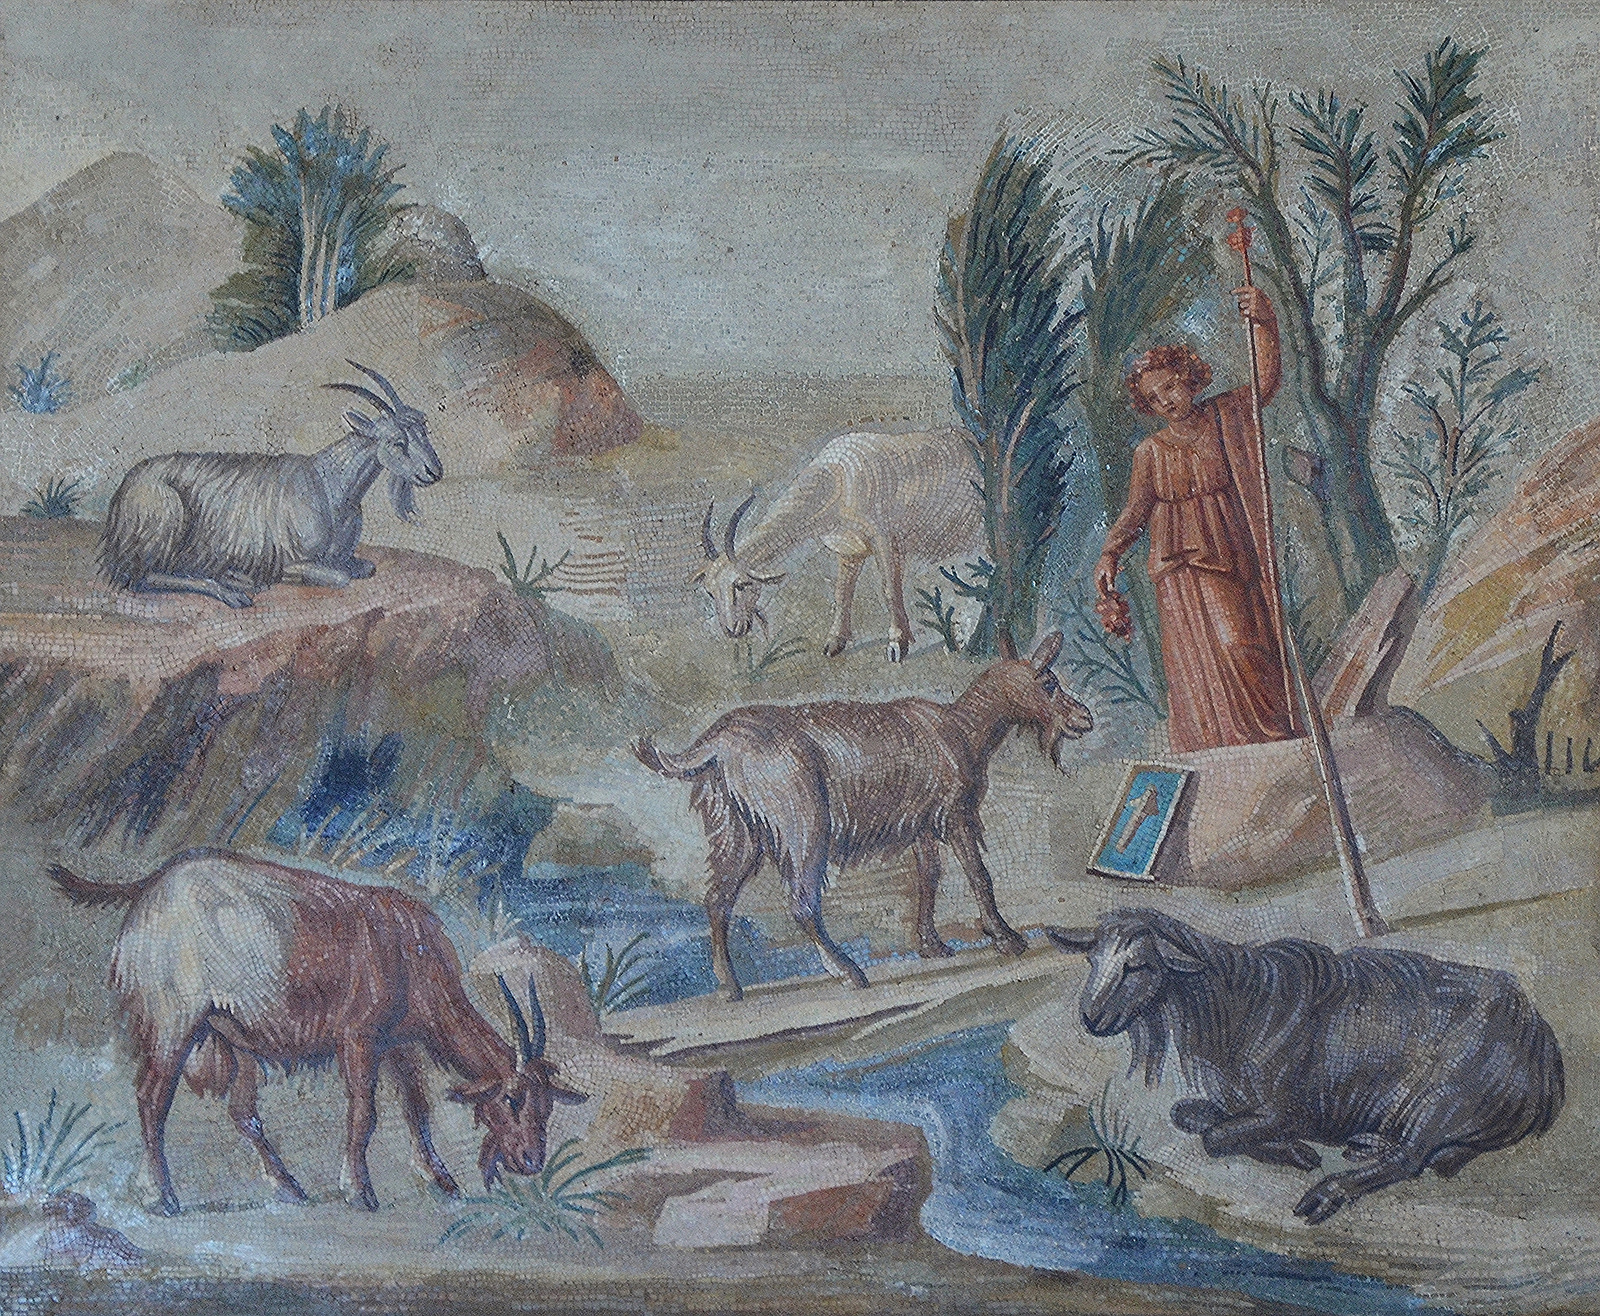 Art and sculptures from Hadrian's Villa: Three mosaic panels with bucolic scenes